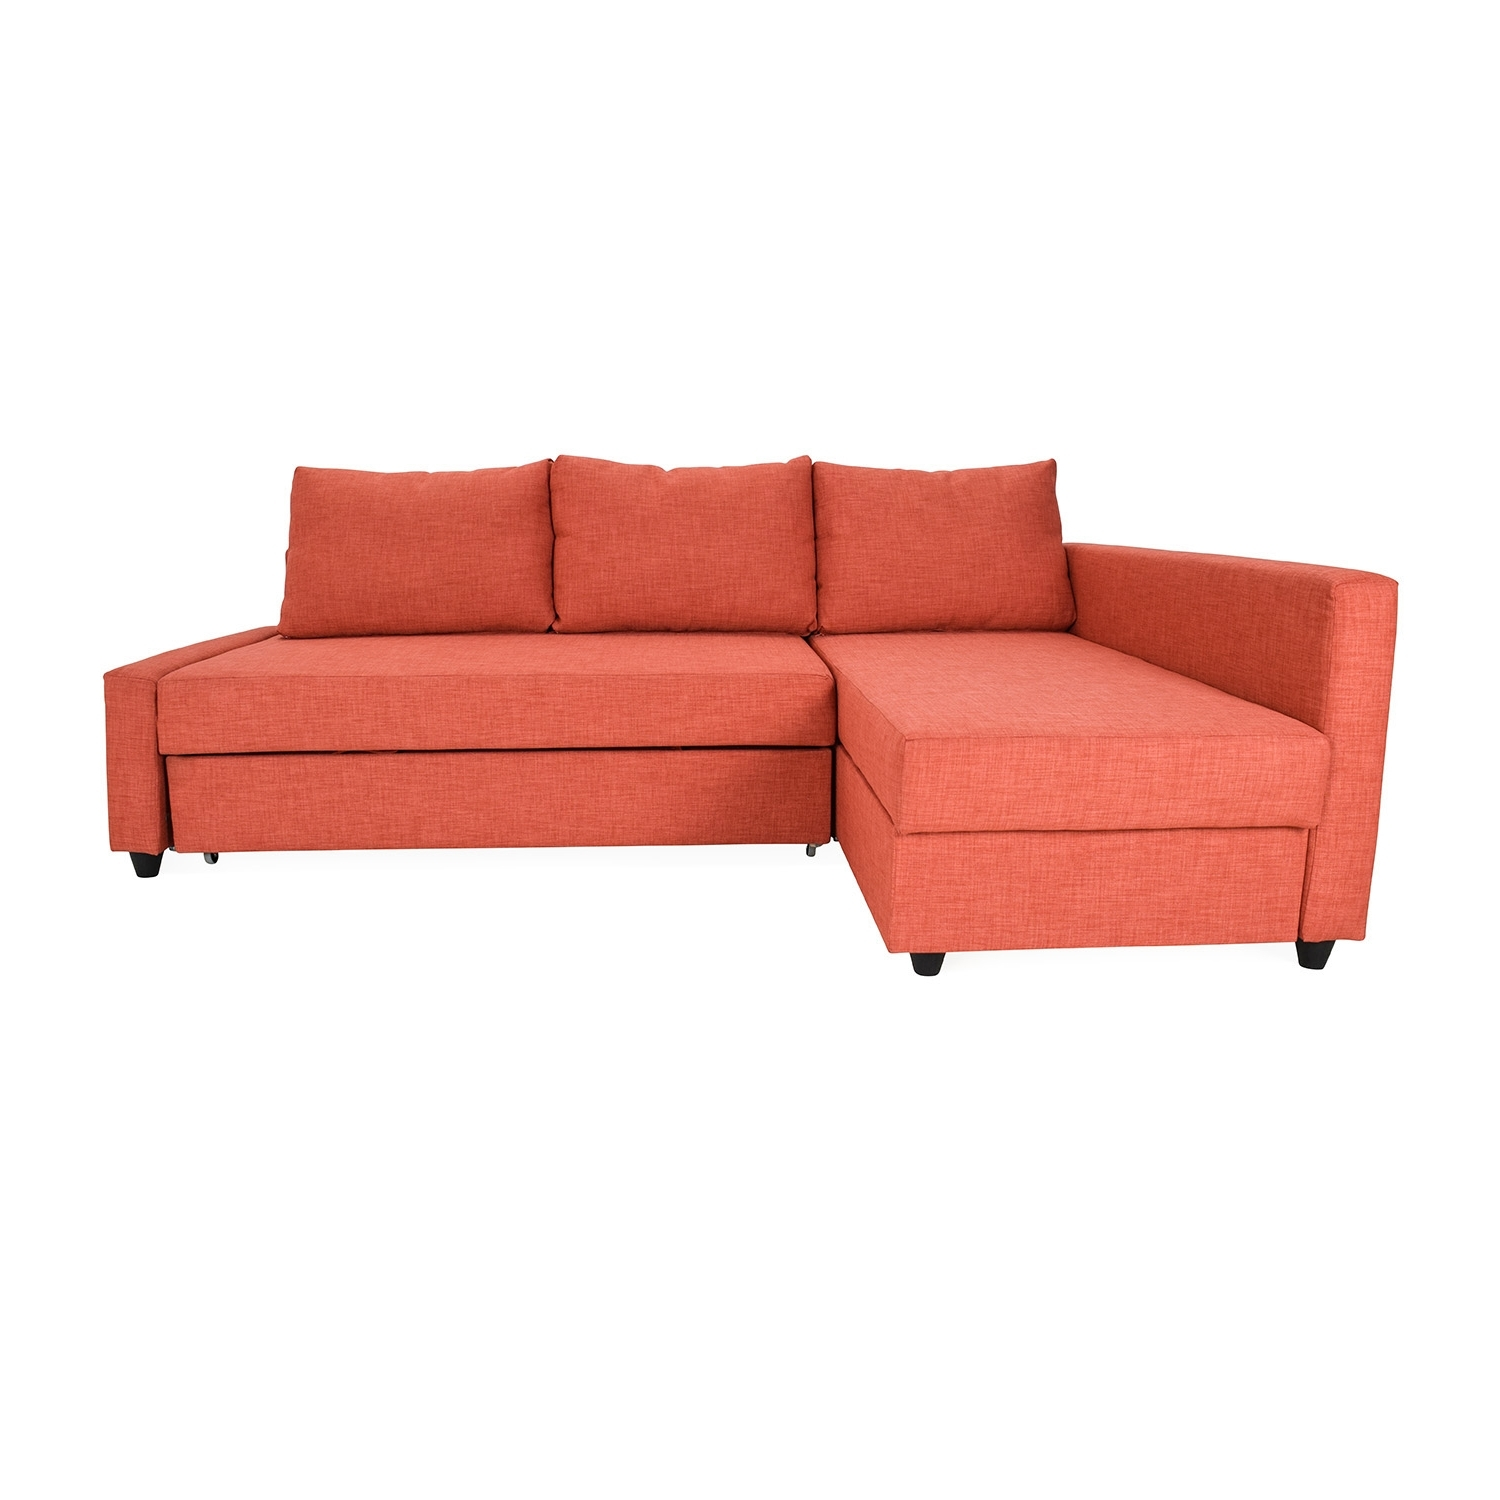 [%49% Off – Ikea Friheten Sofa Bed With Chaise / Sofas In Fashionable Ikea Chaise Sofas|Ikea Chaise Sofas Throughout Latest 49% Off – Ikea Friheten Sofa Bed With Chaise / Sofas|Fashionable Ikea Chaise Sofas Within 49% Off – Ikea Friheten Sofa Bed With Chaise / Sofas|2018 49% Off – Ikea Friheten Sofa Bed With Chaise / Sofas Inside Ikea Chaise Sofas%] (View 1 of 15)